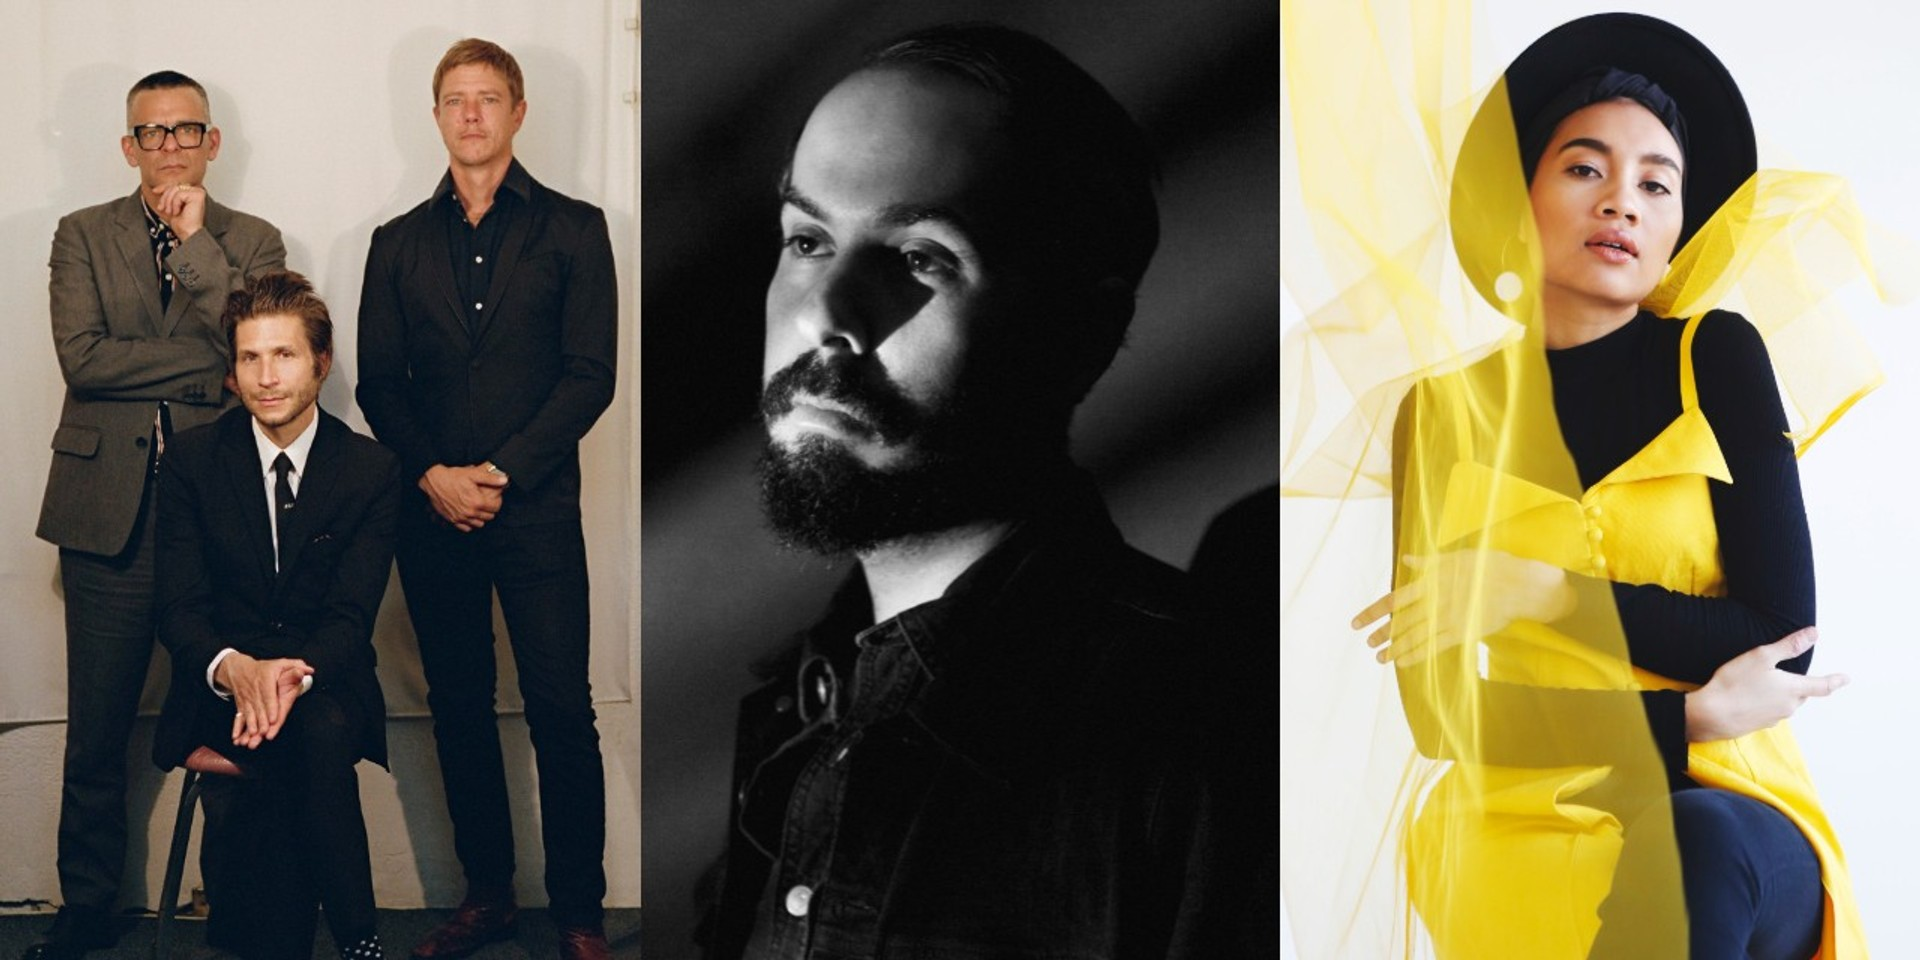 Neon Lights returns this November, announces Phase 1 line-up – Interpol, Cigarettes After Sex, Yuna and more